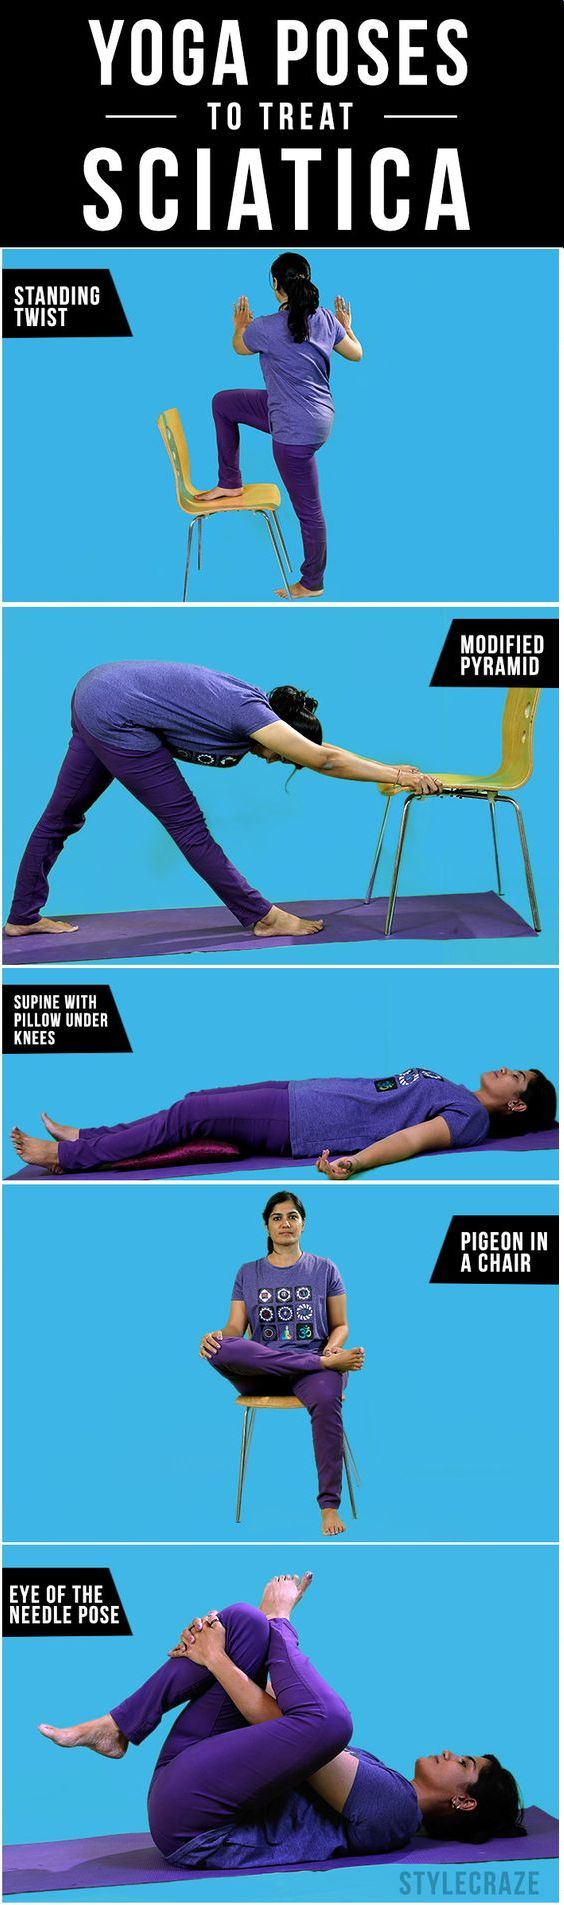 There are several ailments that cause pain, but very few can be as excruciating or annoying than Sciatica, is not it? Have you ever tried yoga for sciatica pain relief?  http://www.stylecraze.com/articles/effective-yoga-poses-to-treat-sciatica/